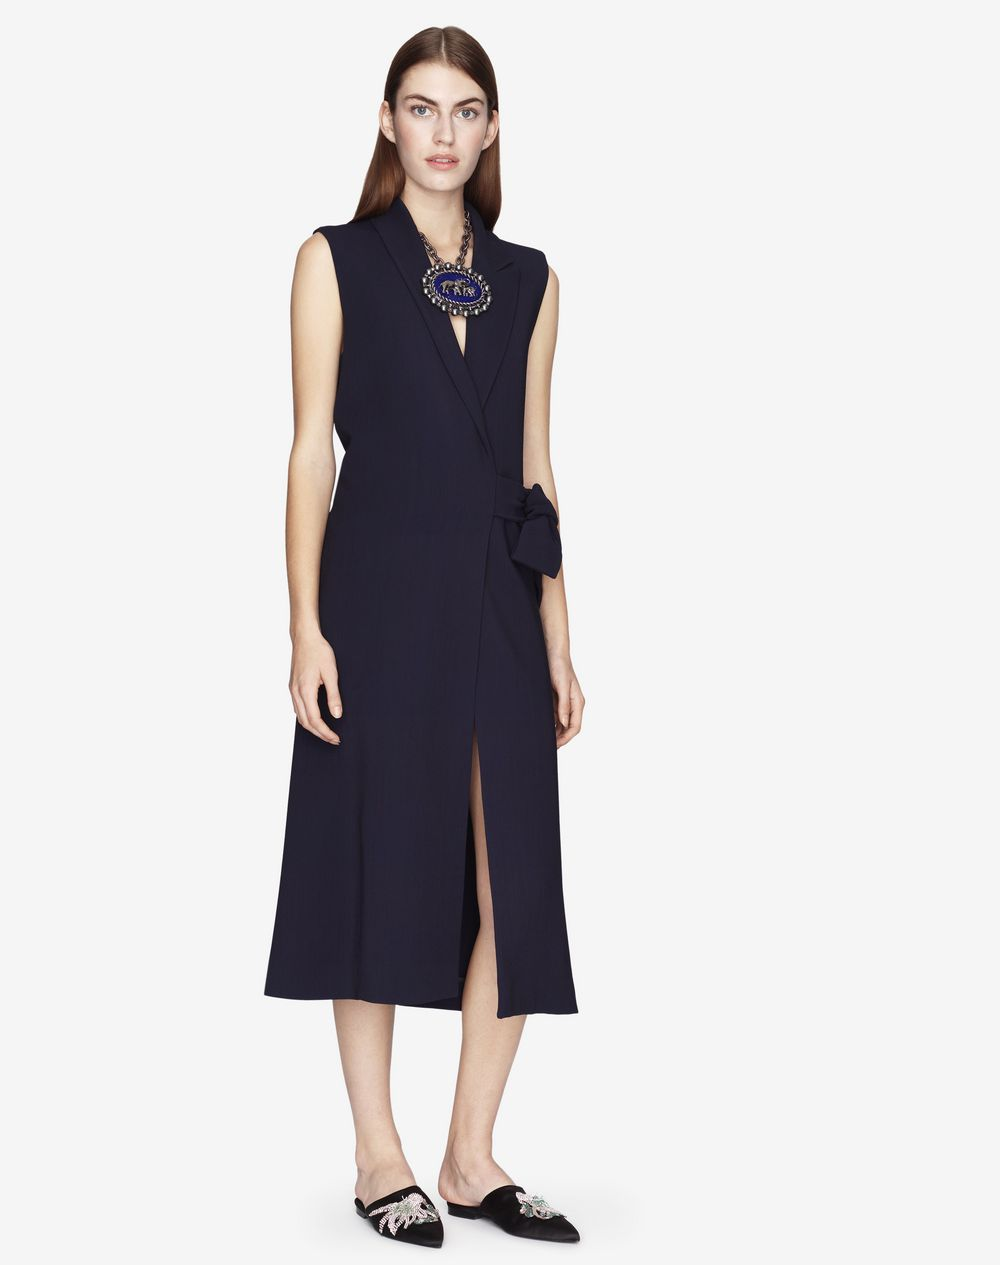 ASYMMETRICAL SLEEVELESS COAT - Lanvin